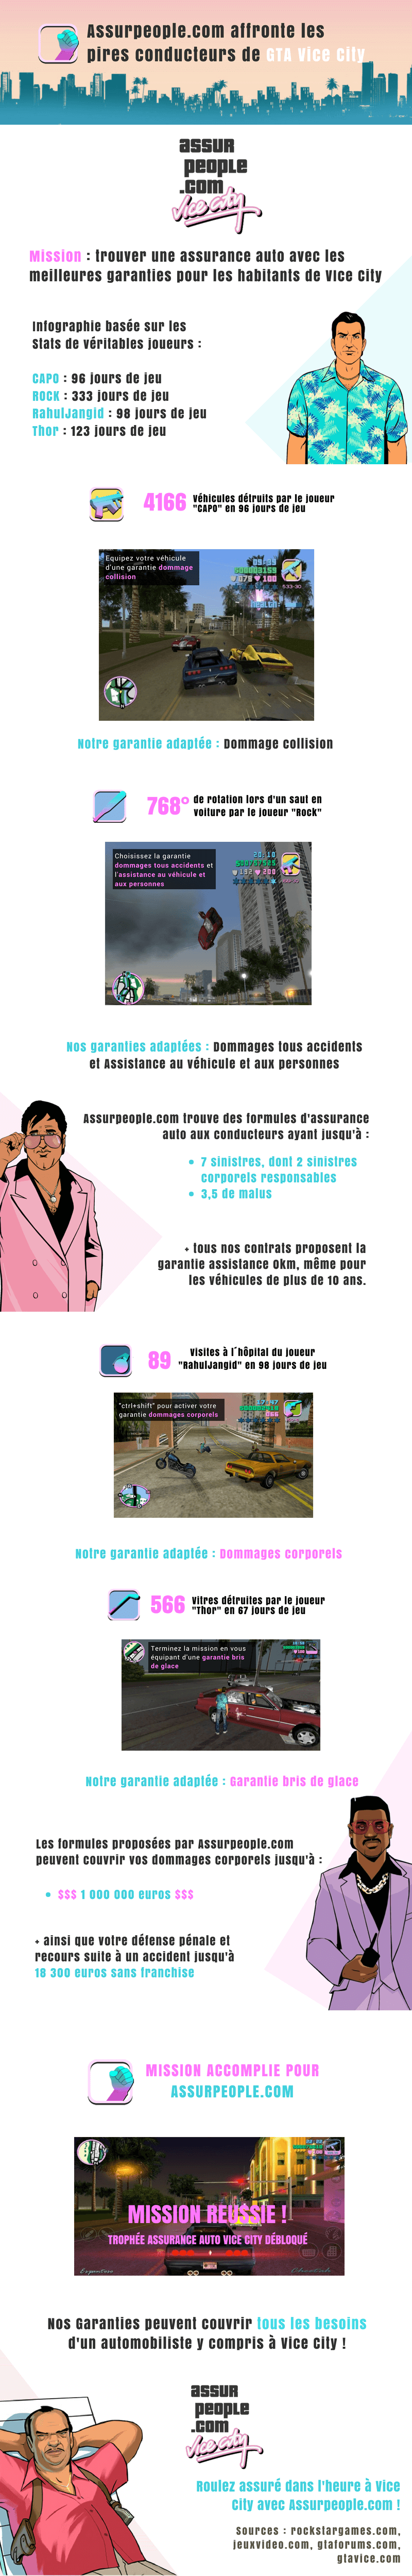 infographie Assurpeople.com GTA vice City